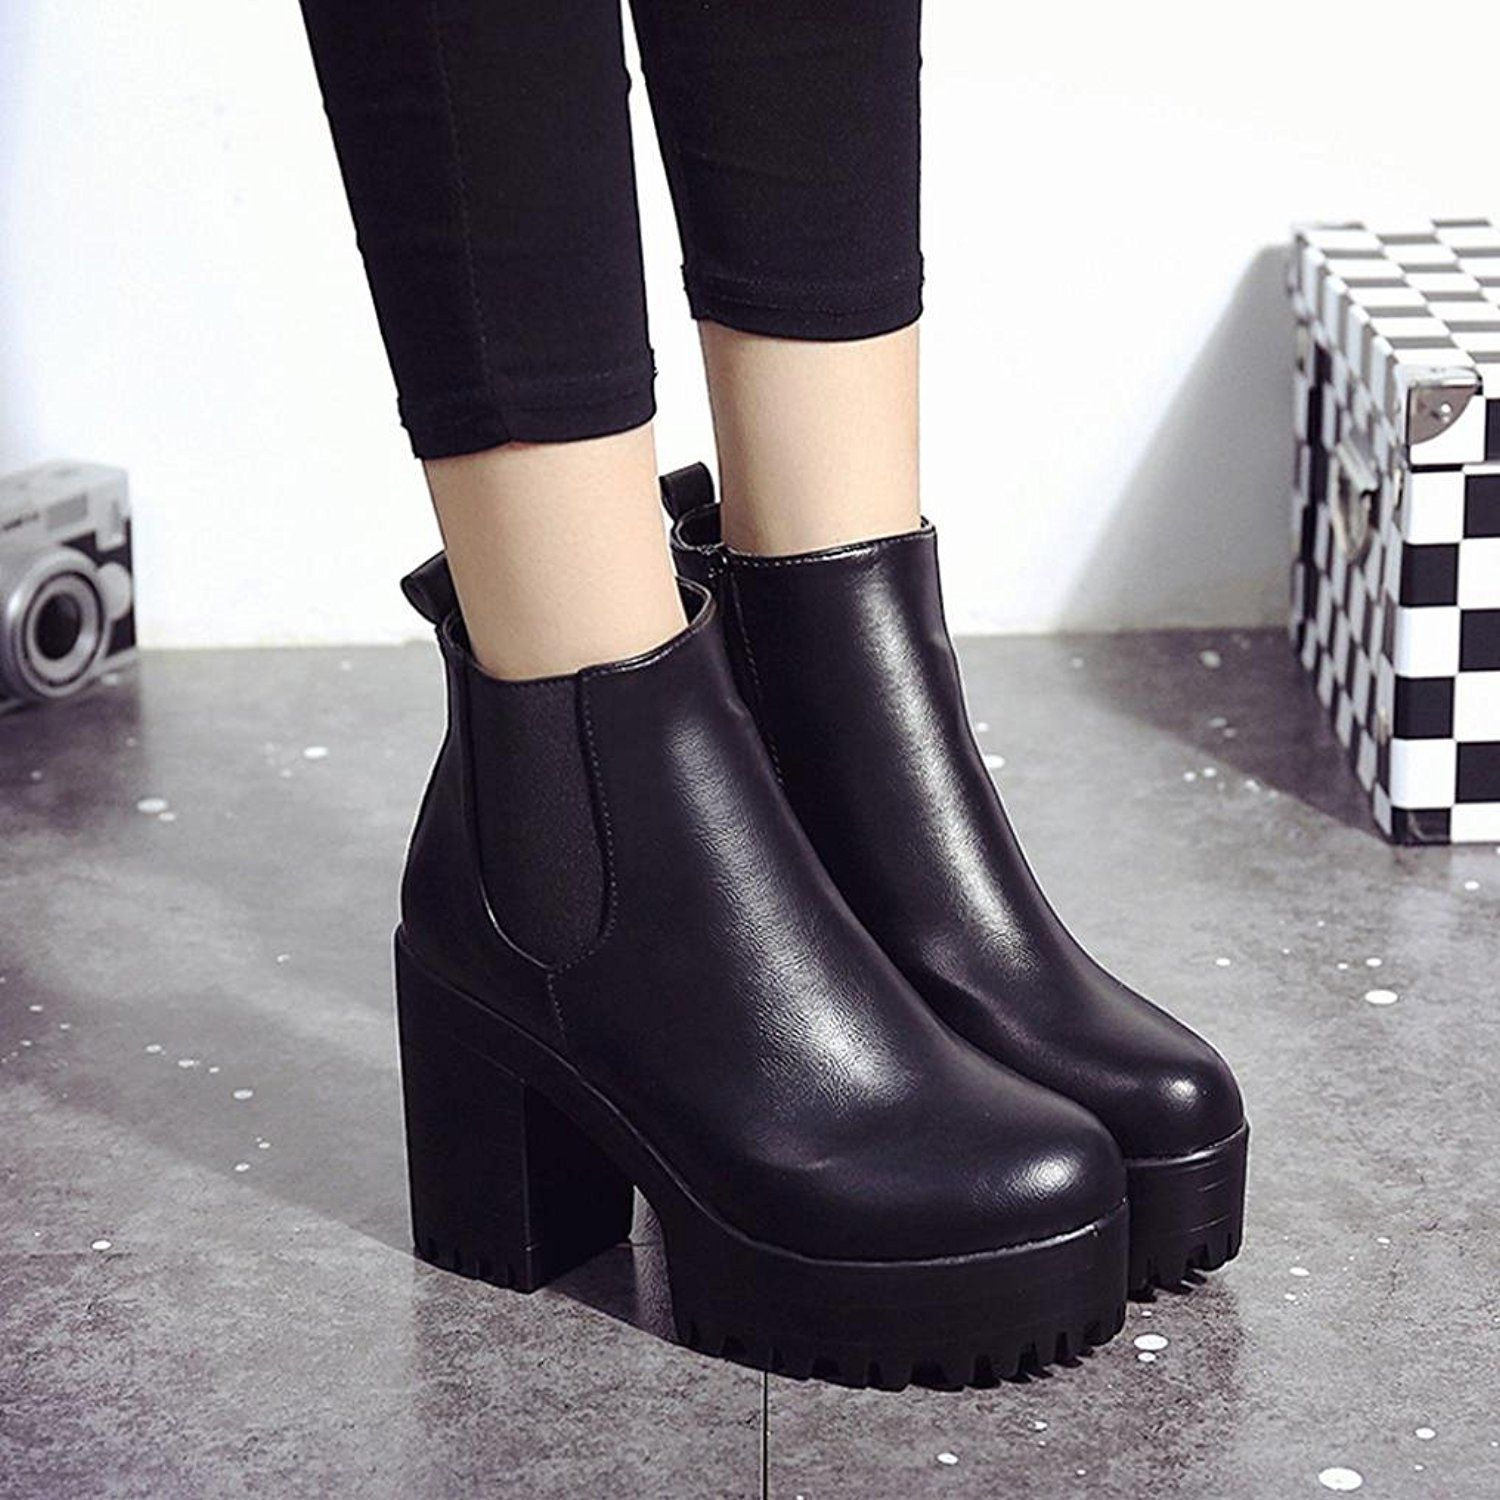 Women's Casual Round Toe Mid Chunky Heels Side Zip Up Short Bikers Ankle Boots